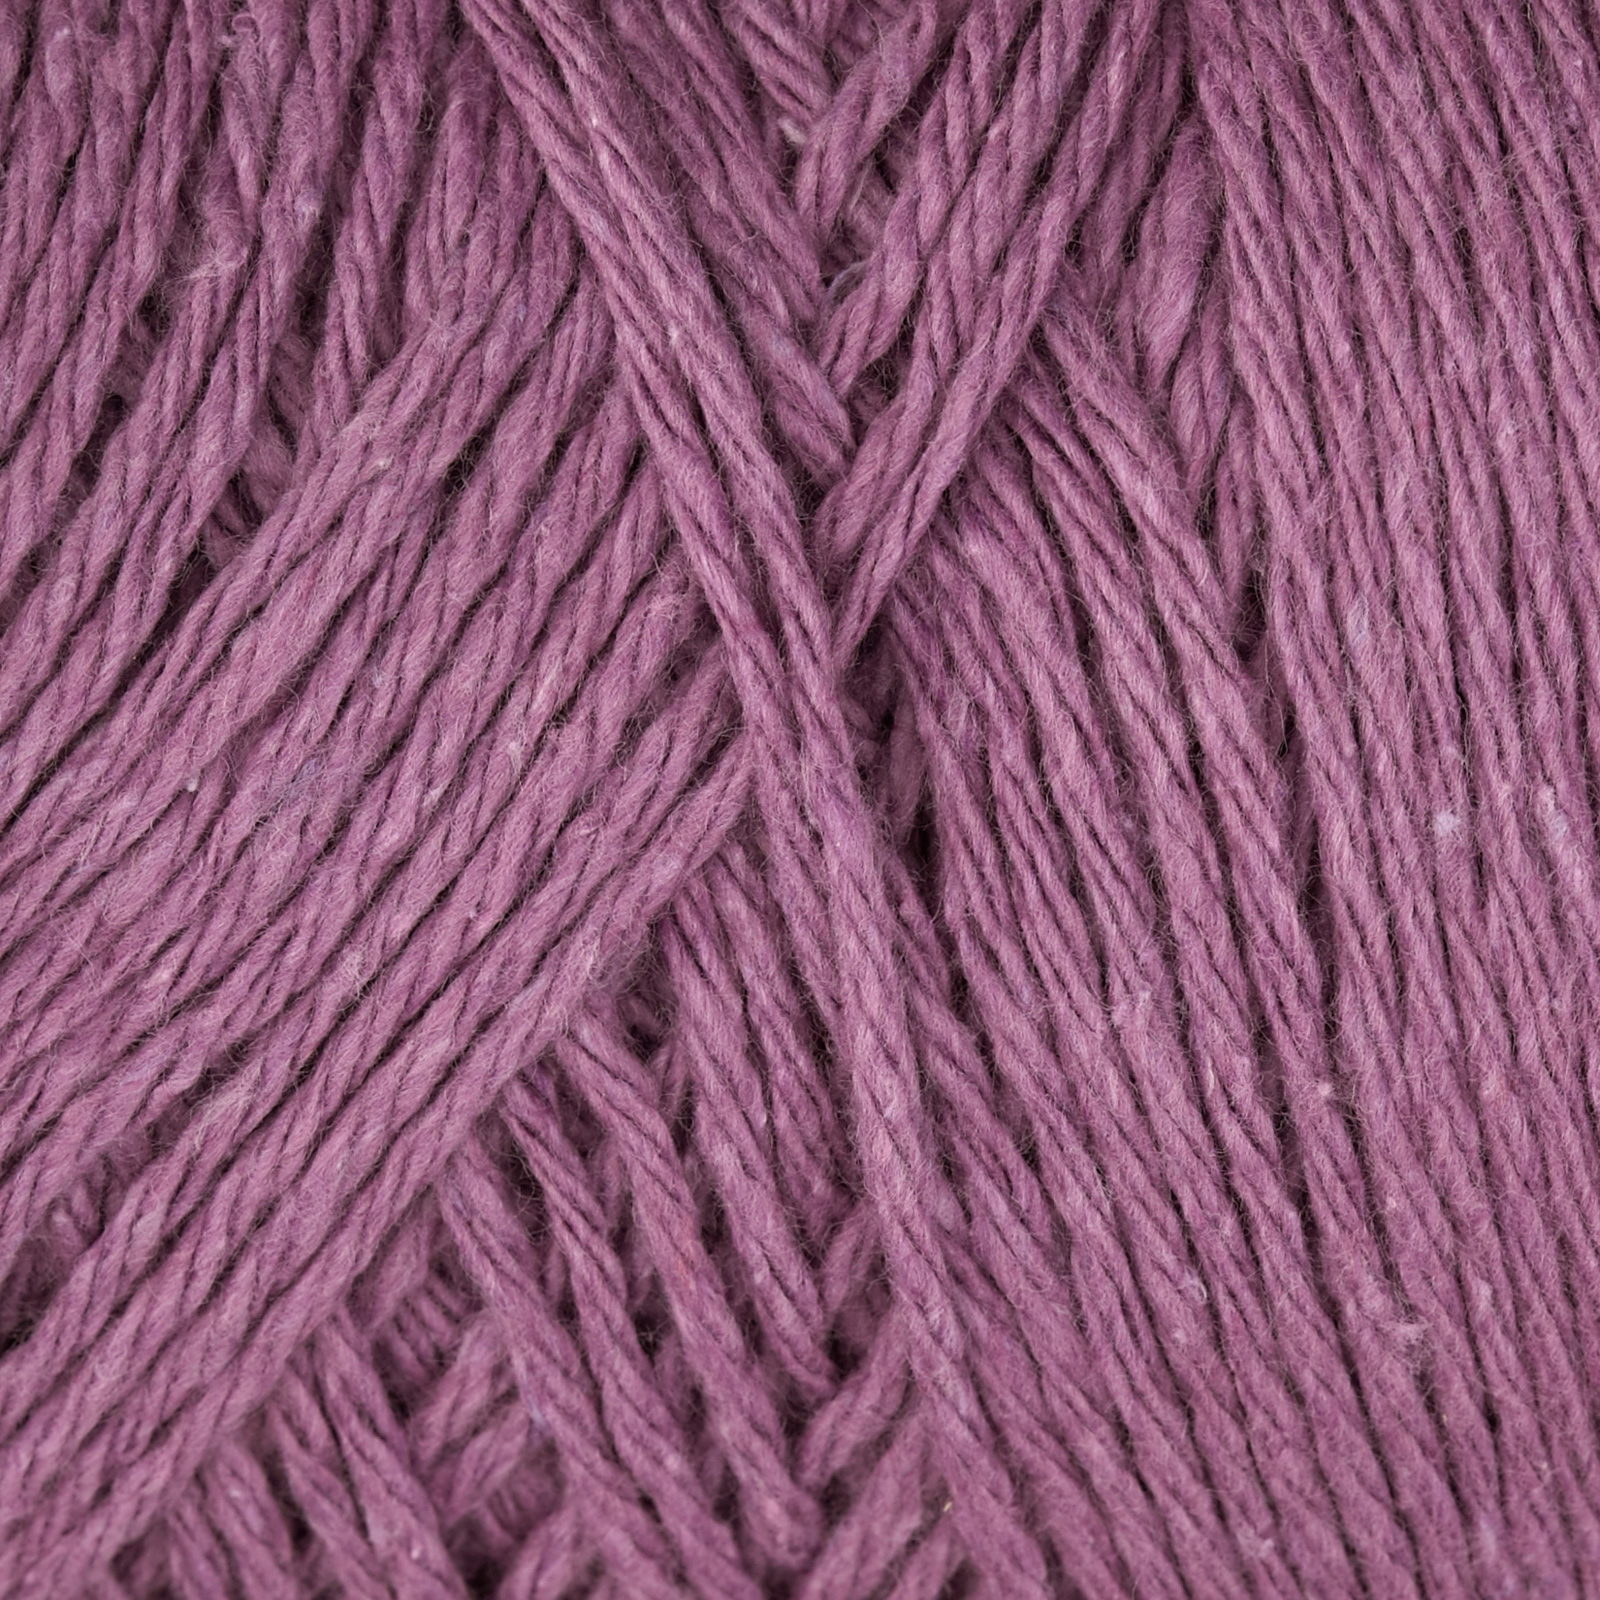 Premier Cotton Grande Yarn (59-17) Passionfruit by Premier in USA